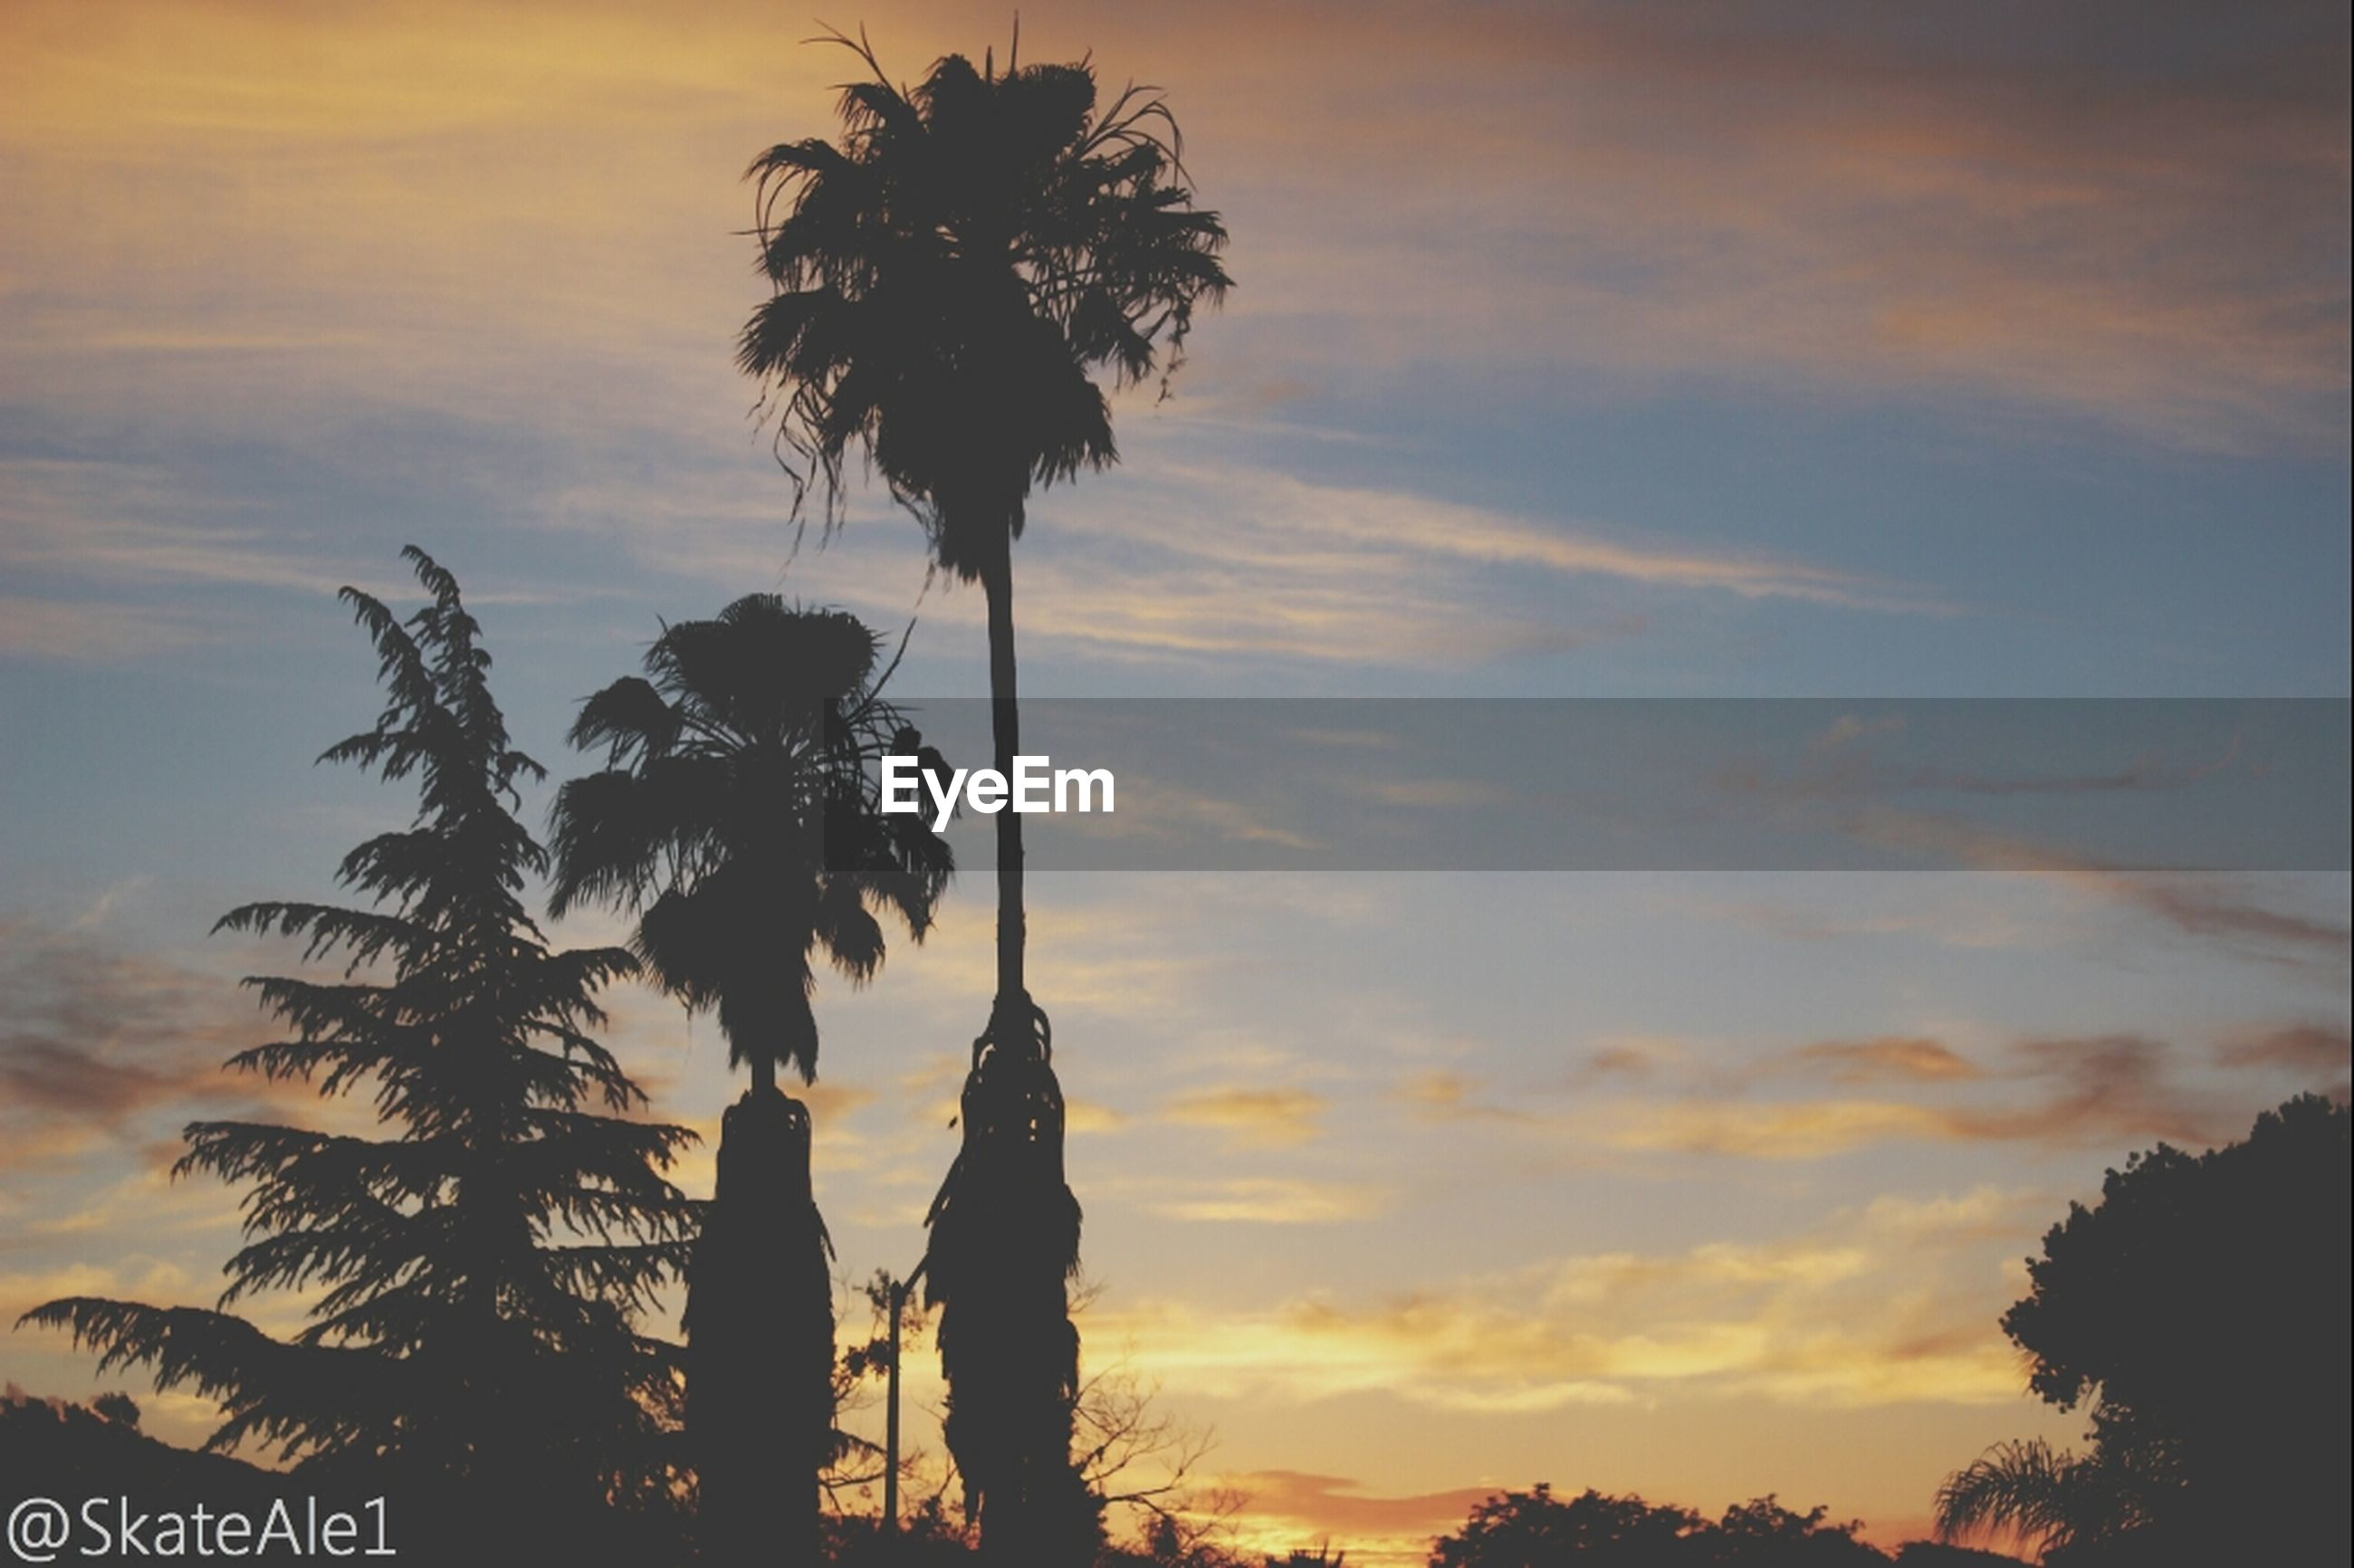 sunset, silhouette, palm tree, tree, sky, low angle view, tranquility, cloud - sky, beauty in nature, orange color, scenics, nature, tree trunk, tranquil scene, growth, cloud, cloudy, dusk, dramatic sky, no people